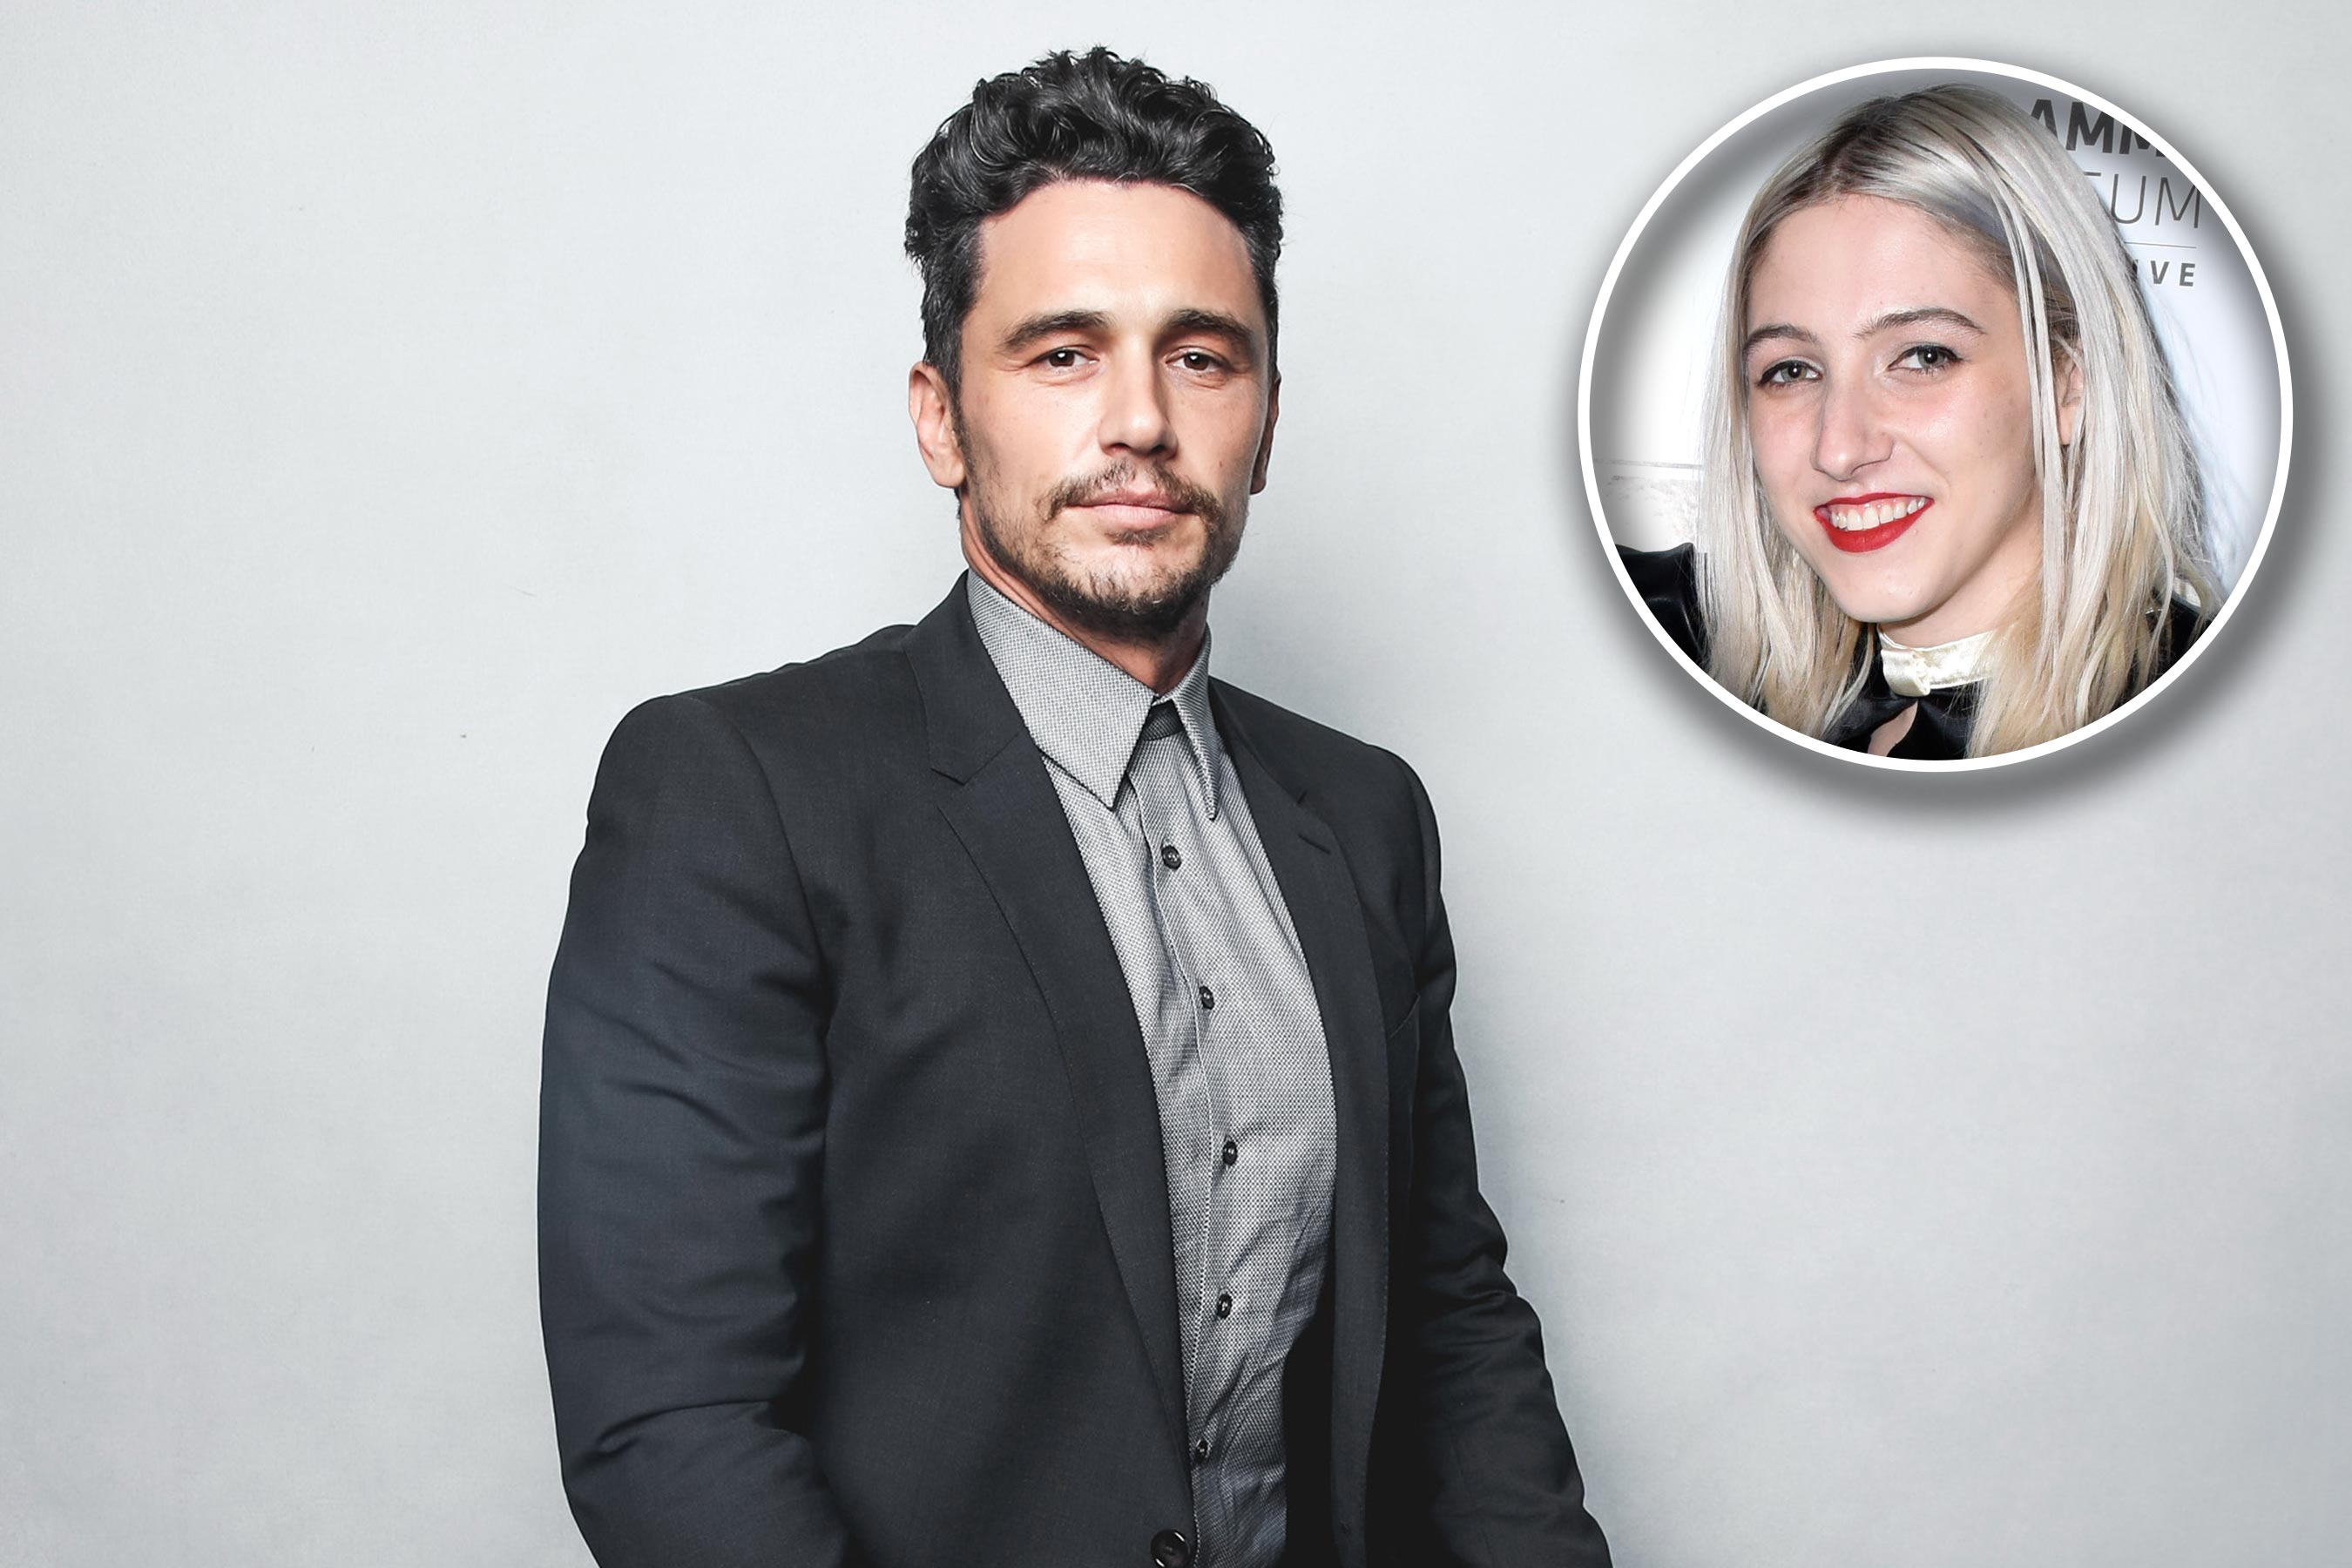 James Franco accuser Violet Paley says she wants him to 'promise to change'